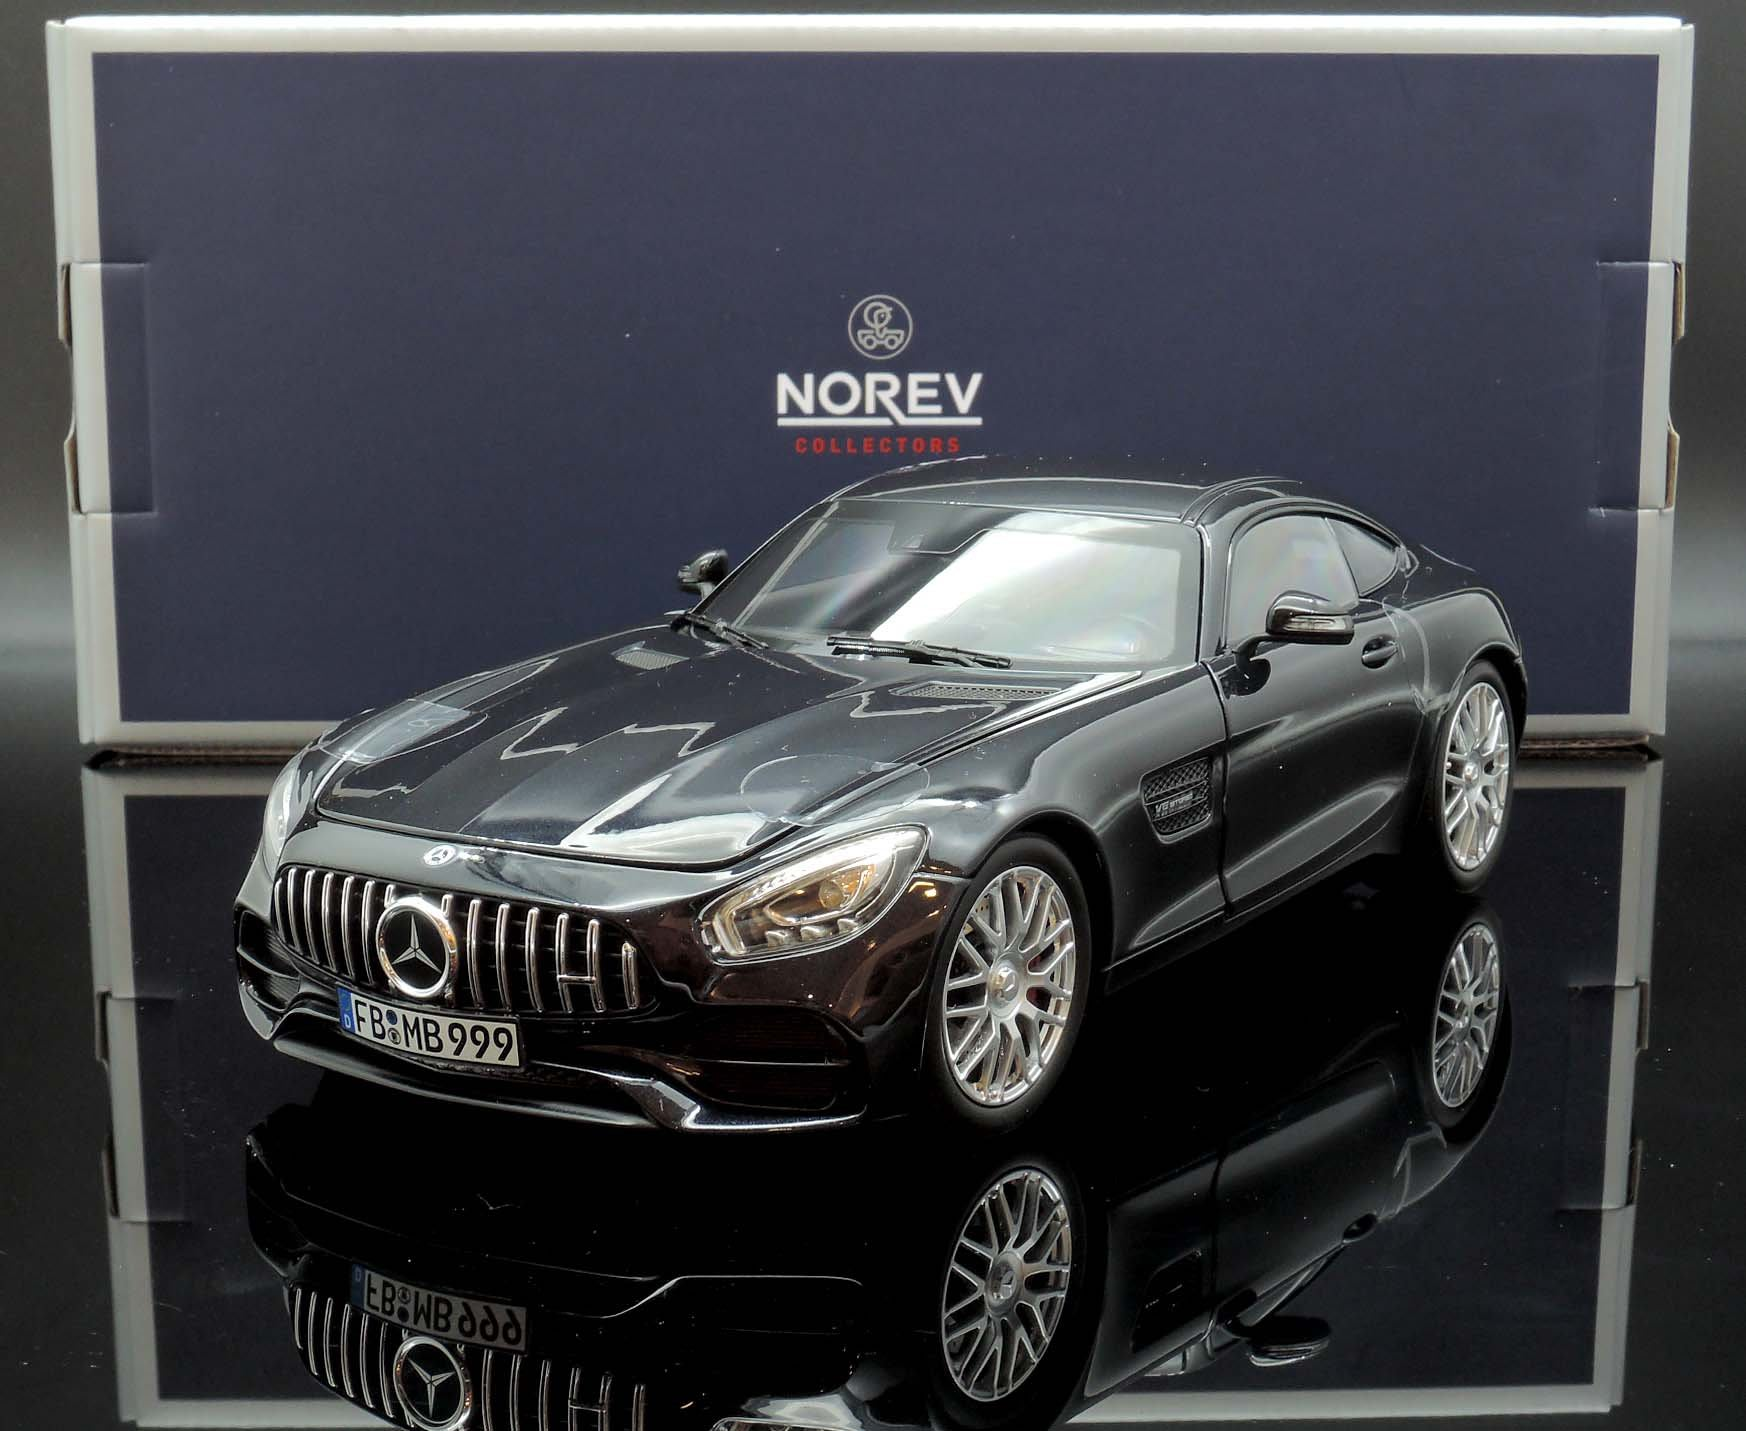 【M.A.S.H】現貨瘋狂價 原廠 Norev 1/18 Mercedes AMG AMG GT S 黑 2018